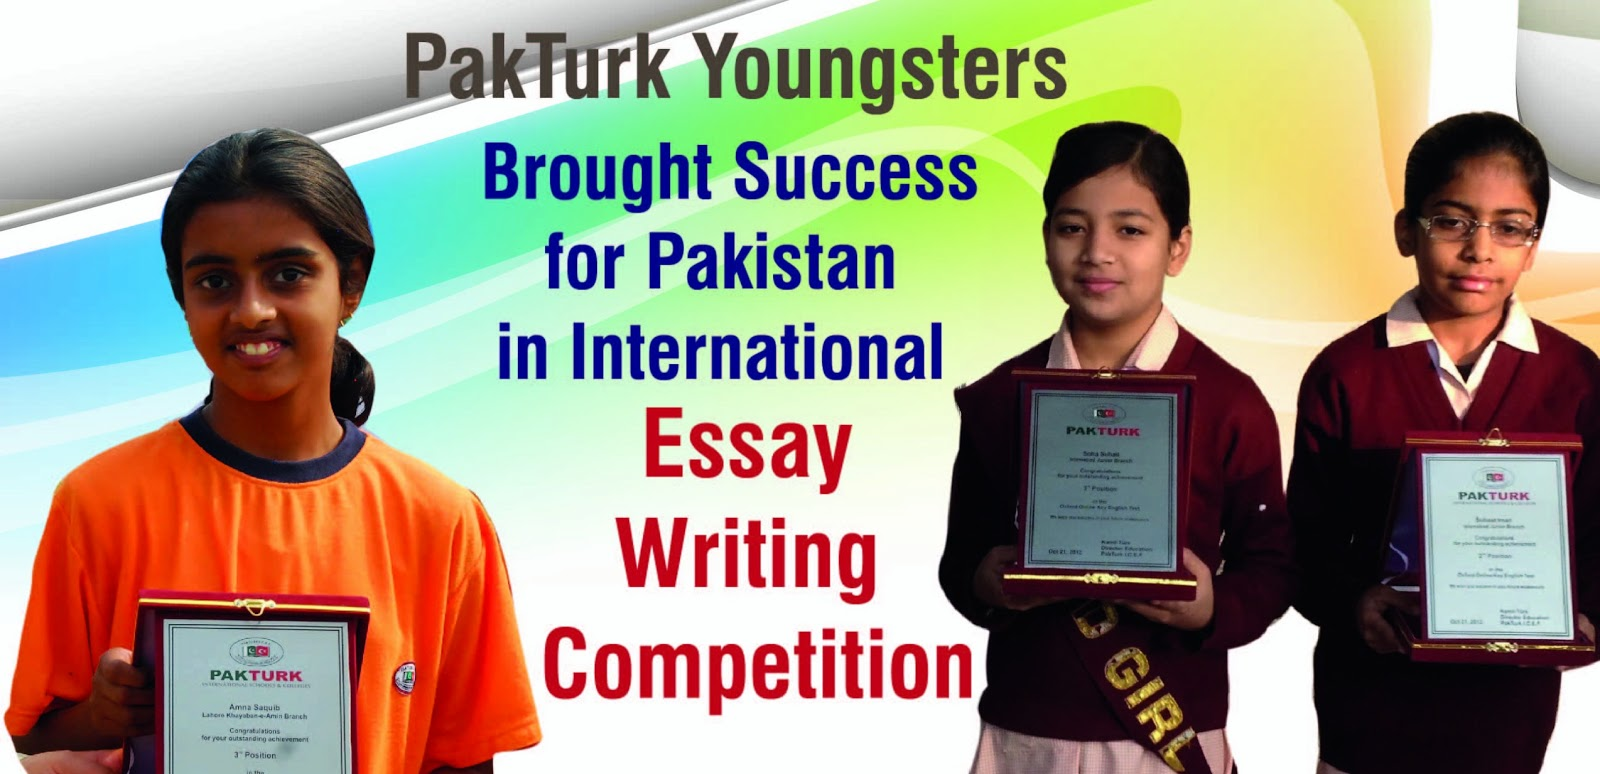 essay writing contests 2013 for high school students Professional resume writer uk essay contests for college students 2013 essay on my native place kerala dissertation philosophie puis je savoir qui je suis.